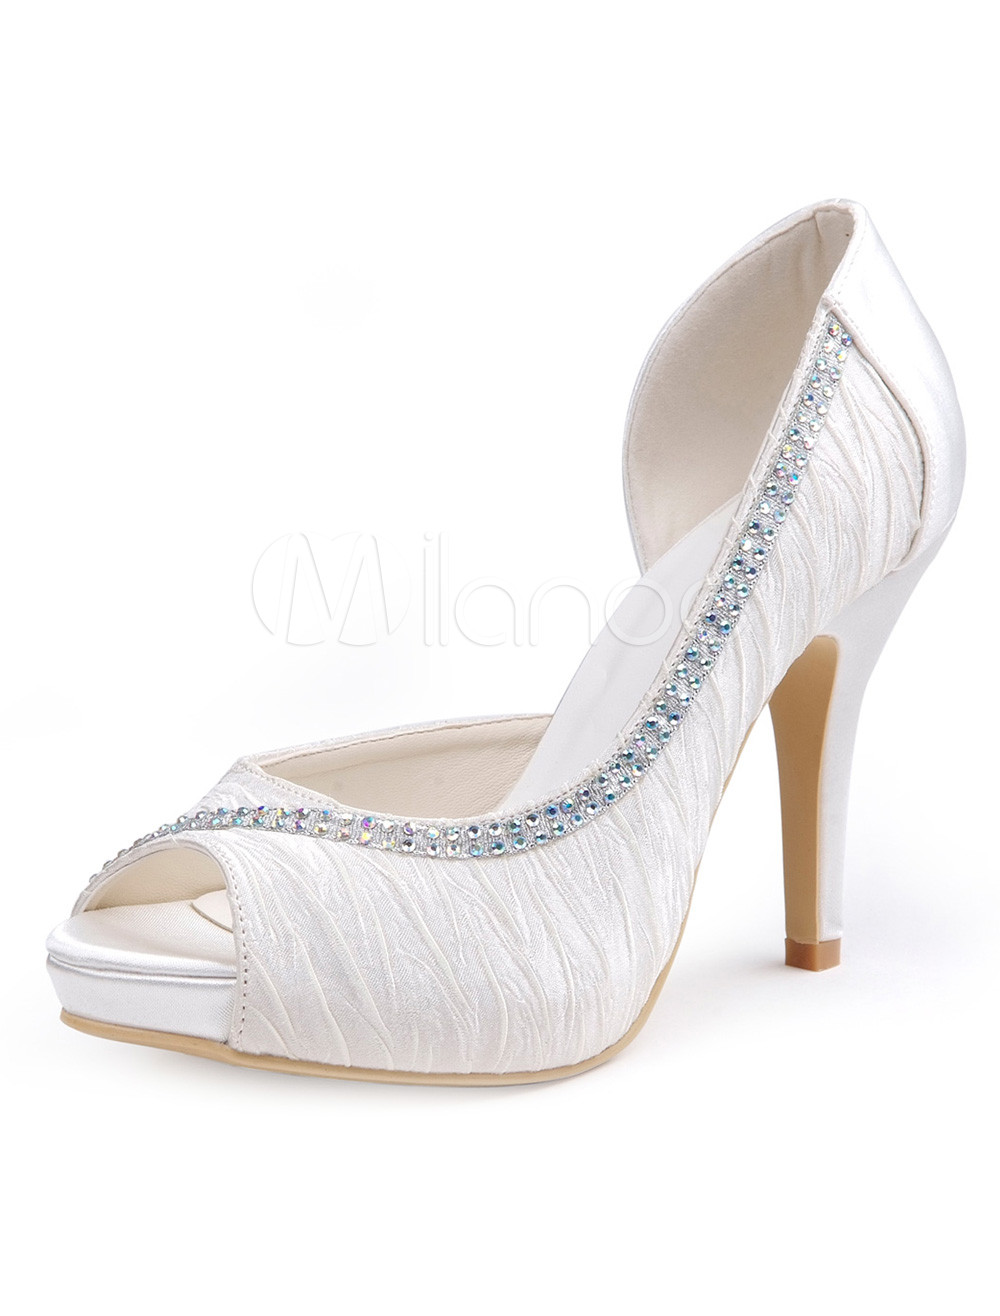 Buy Gorgeous White Silk And Satin Rhinestone Peep Toe Woman's Evening Shoes for $71.24 in Milanoo store